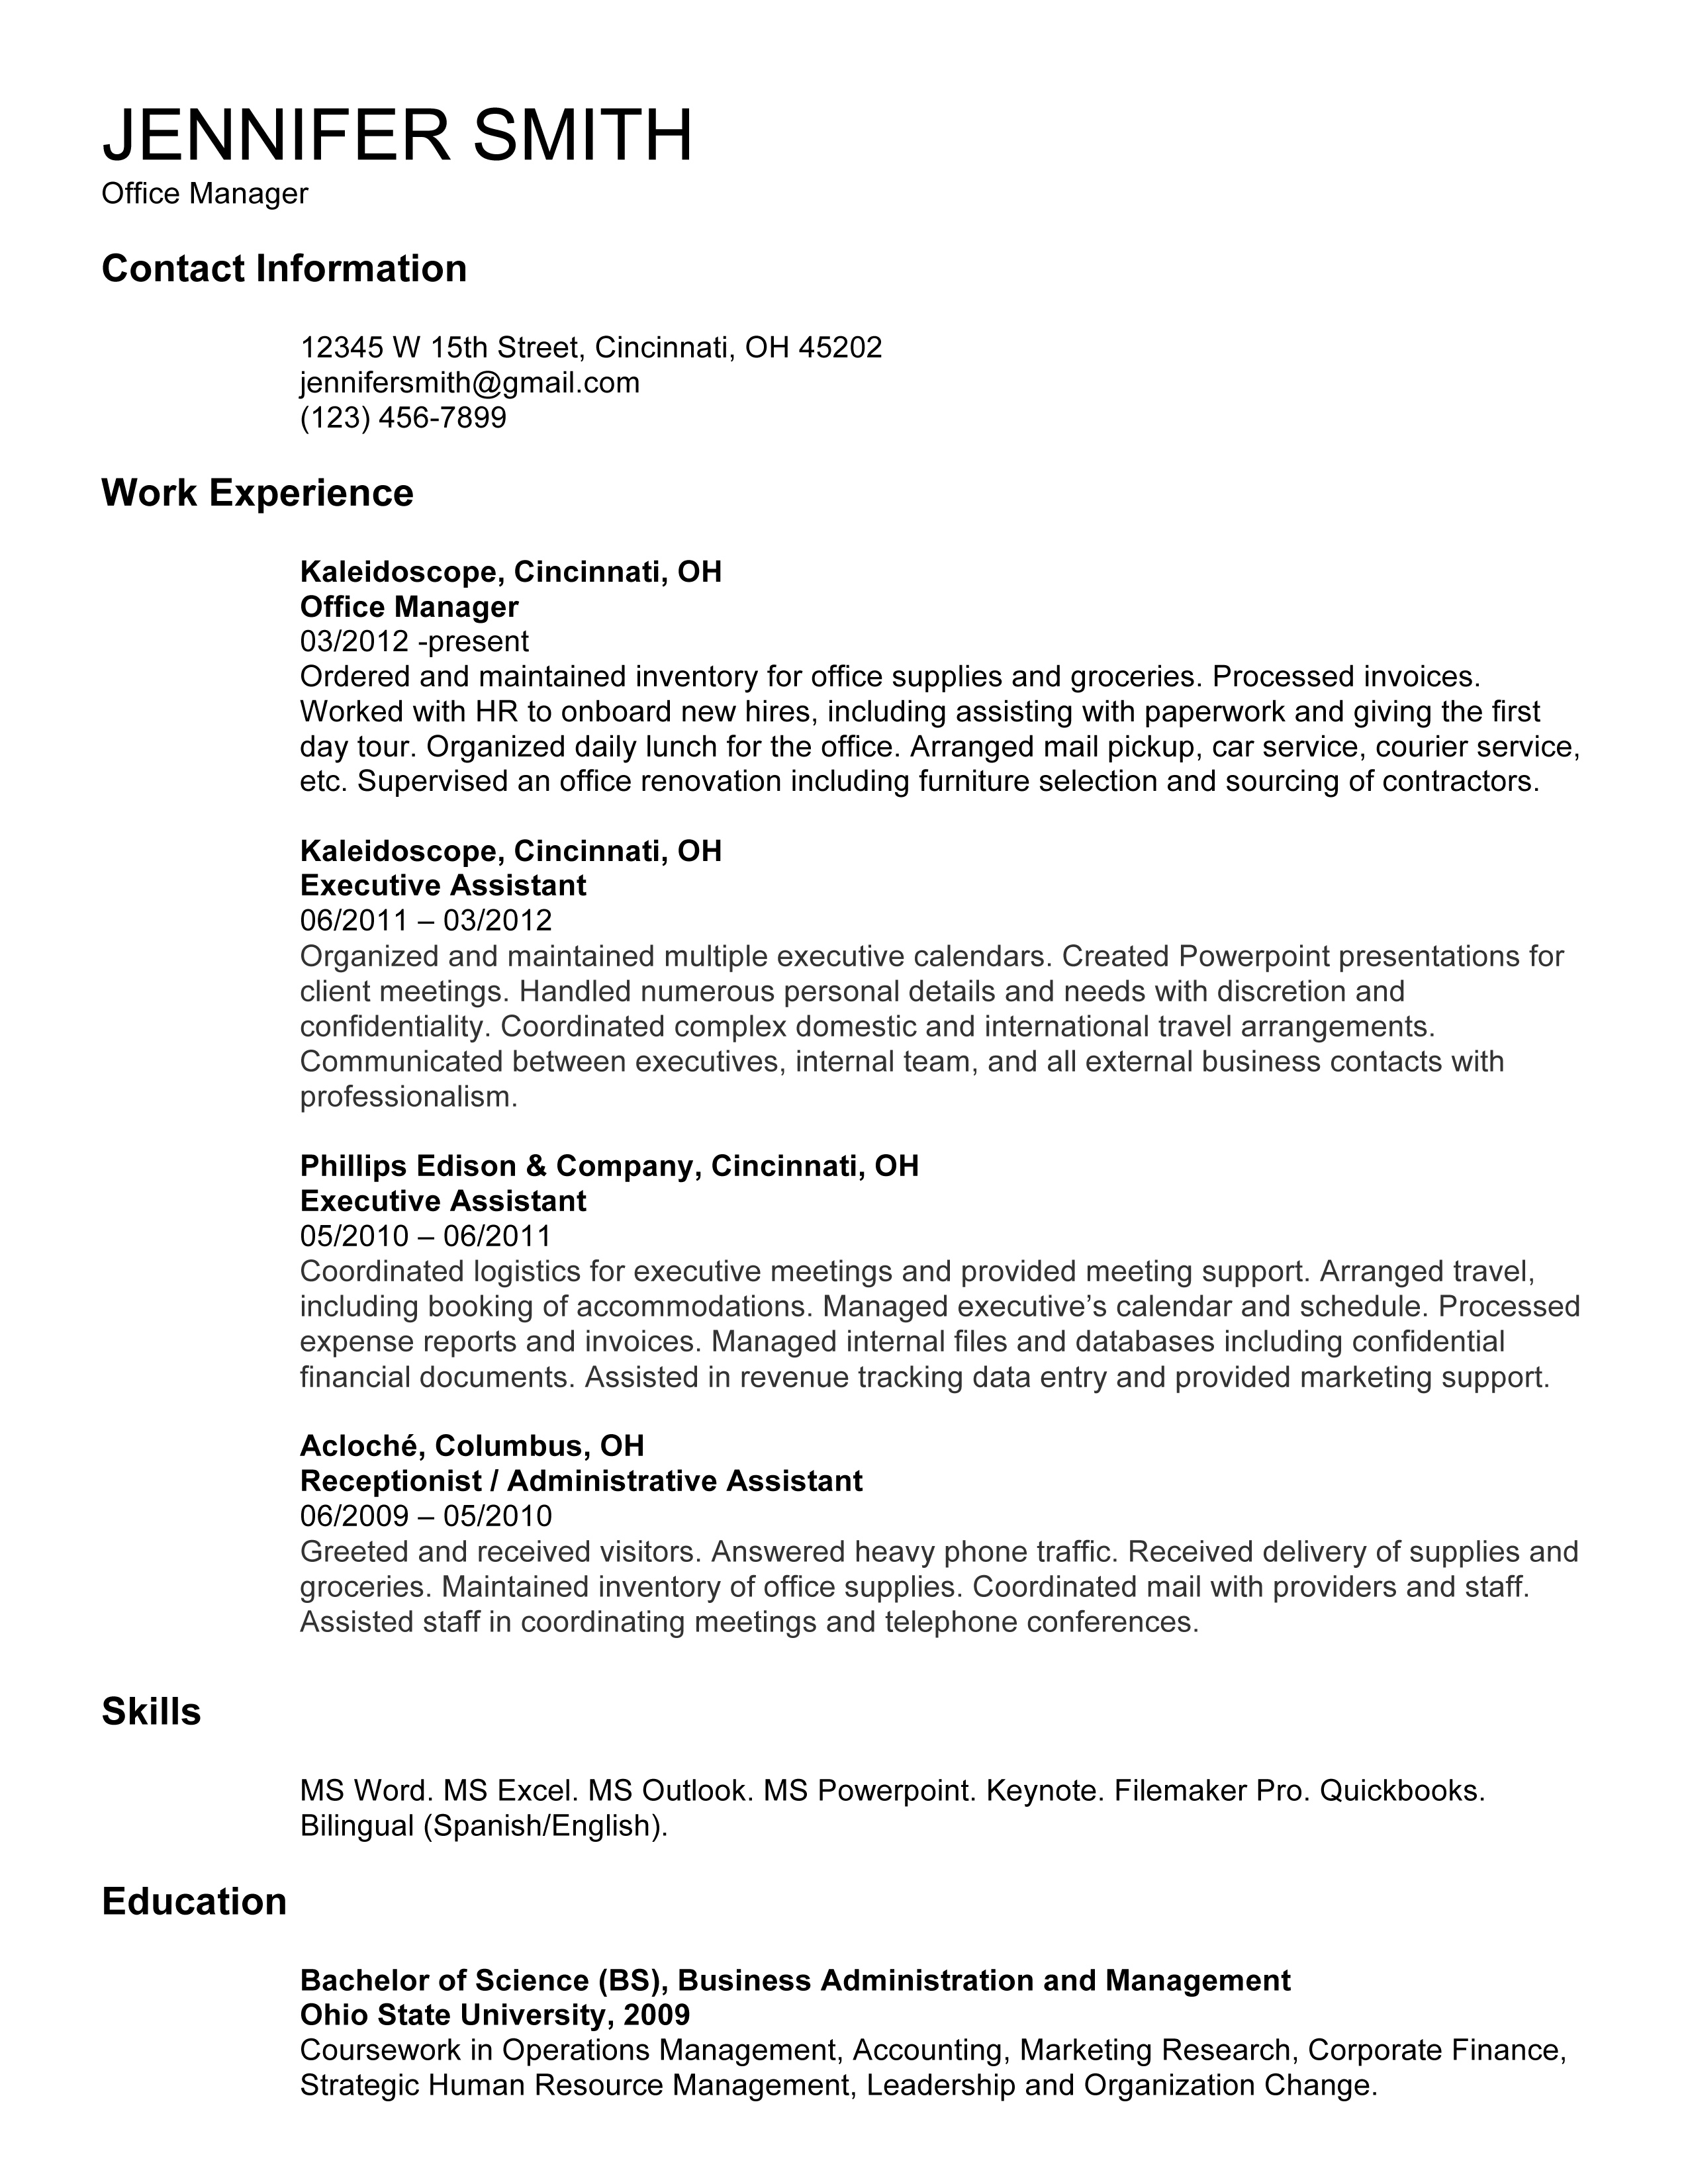 Medical Resume Examples Medical Sample Resumes LiveCareer Sample Of  Attorney Resume Resume Templates Construction Site Supervisor  Resume For Home Health Aide